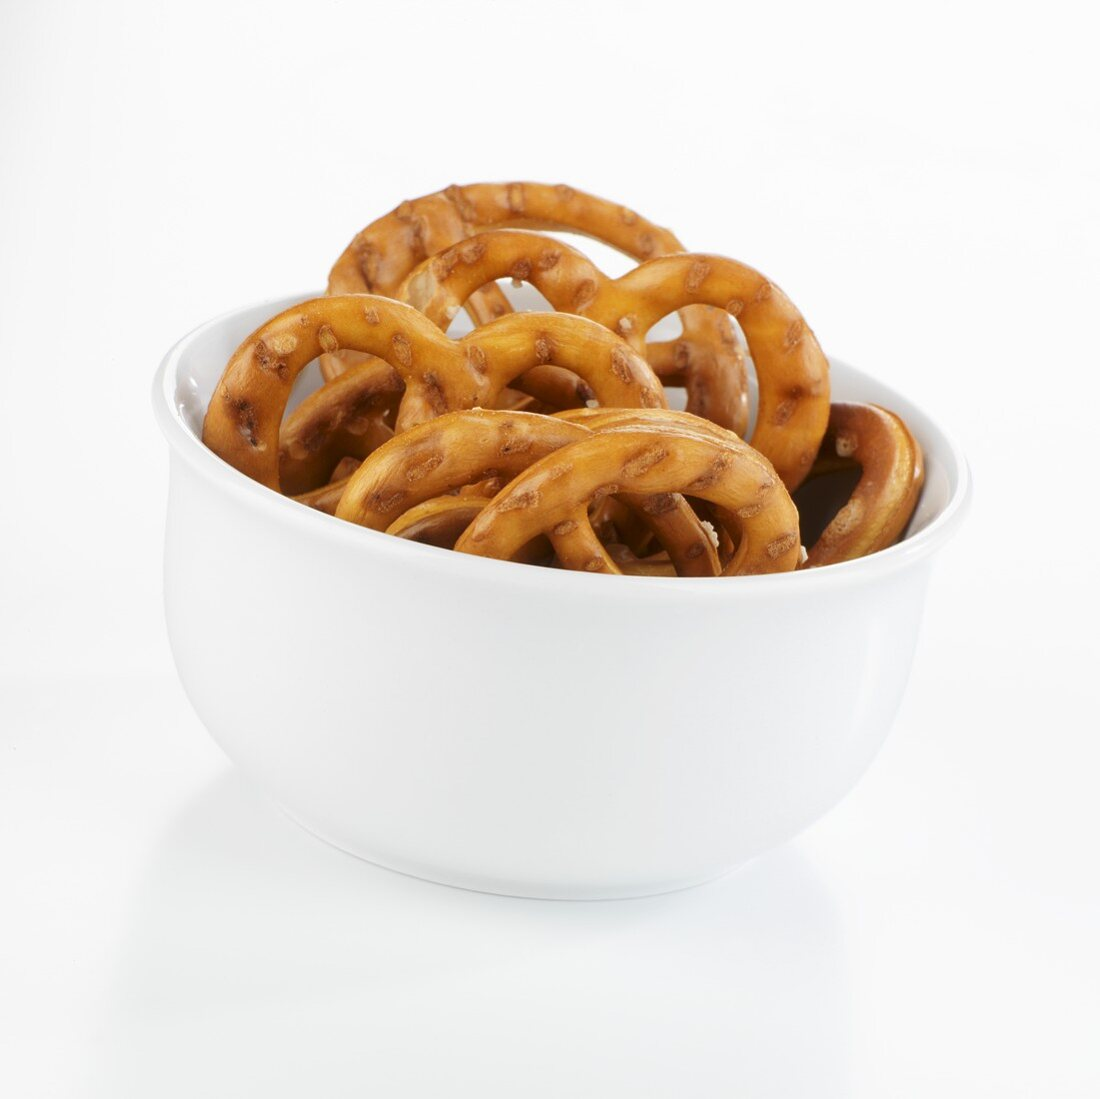 Salted pretzels in a small white bowl